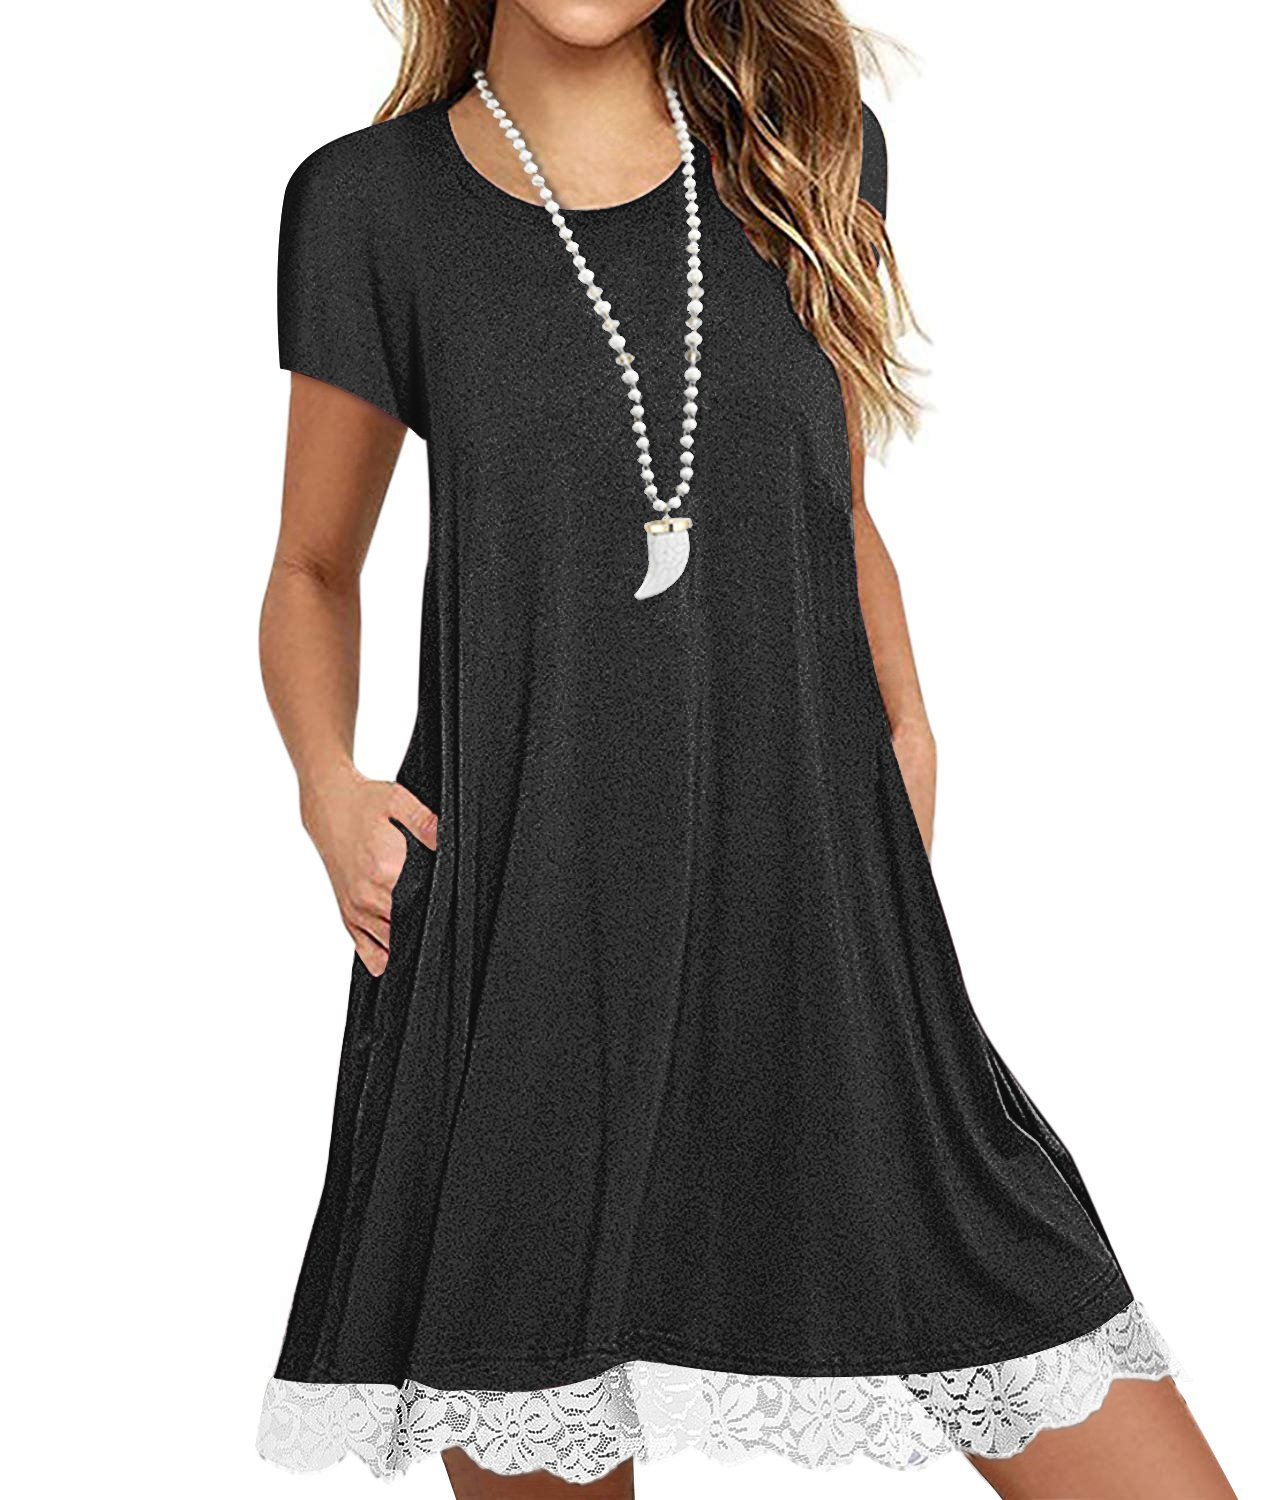 Eanklosco Womens Casual Short Sleeve Plain Pocket V Neck T Shirt Tunic Dress (Black-2, XL)